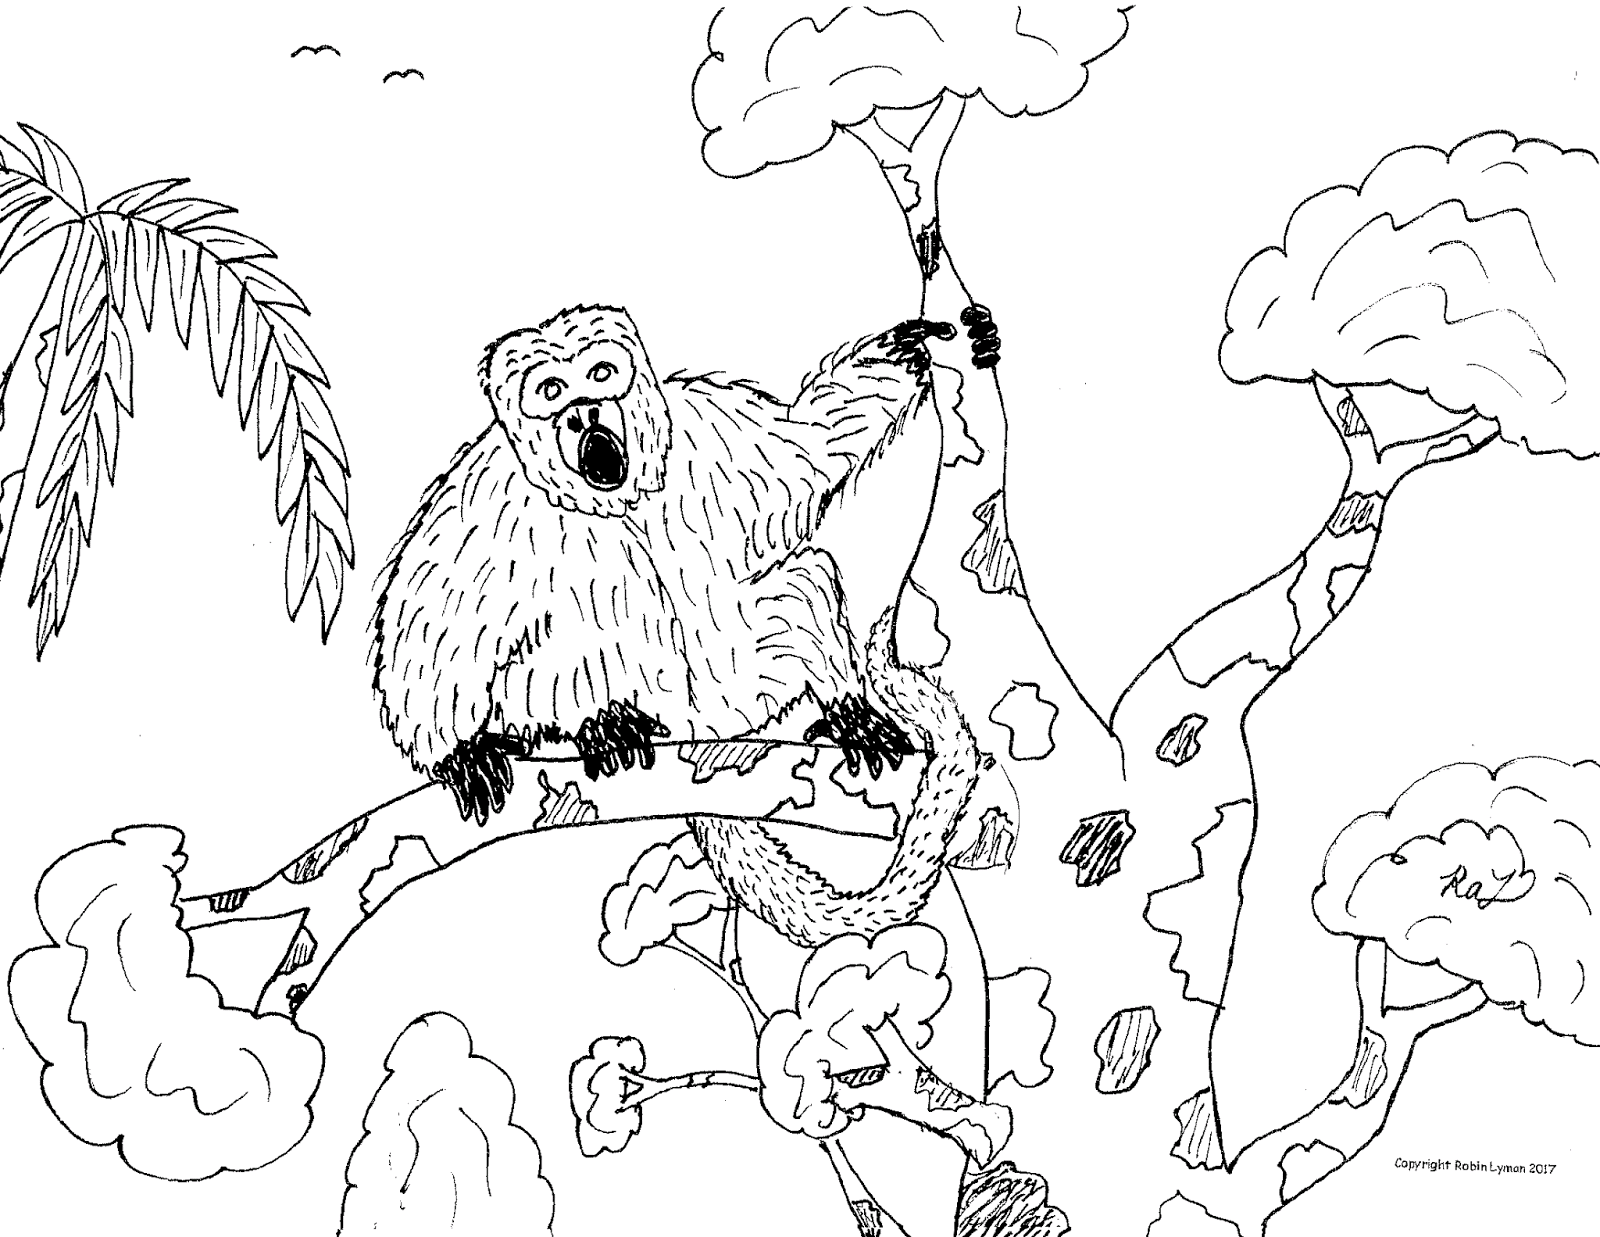 Robin's Great Coloring Pages: Howler Monkey and Spider Monkey